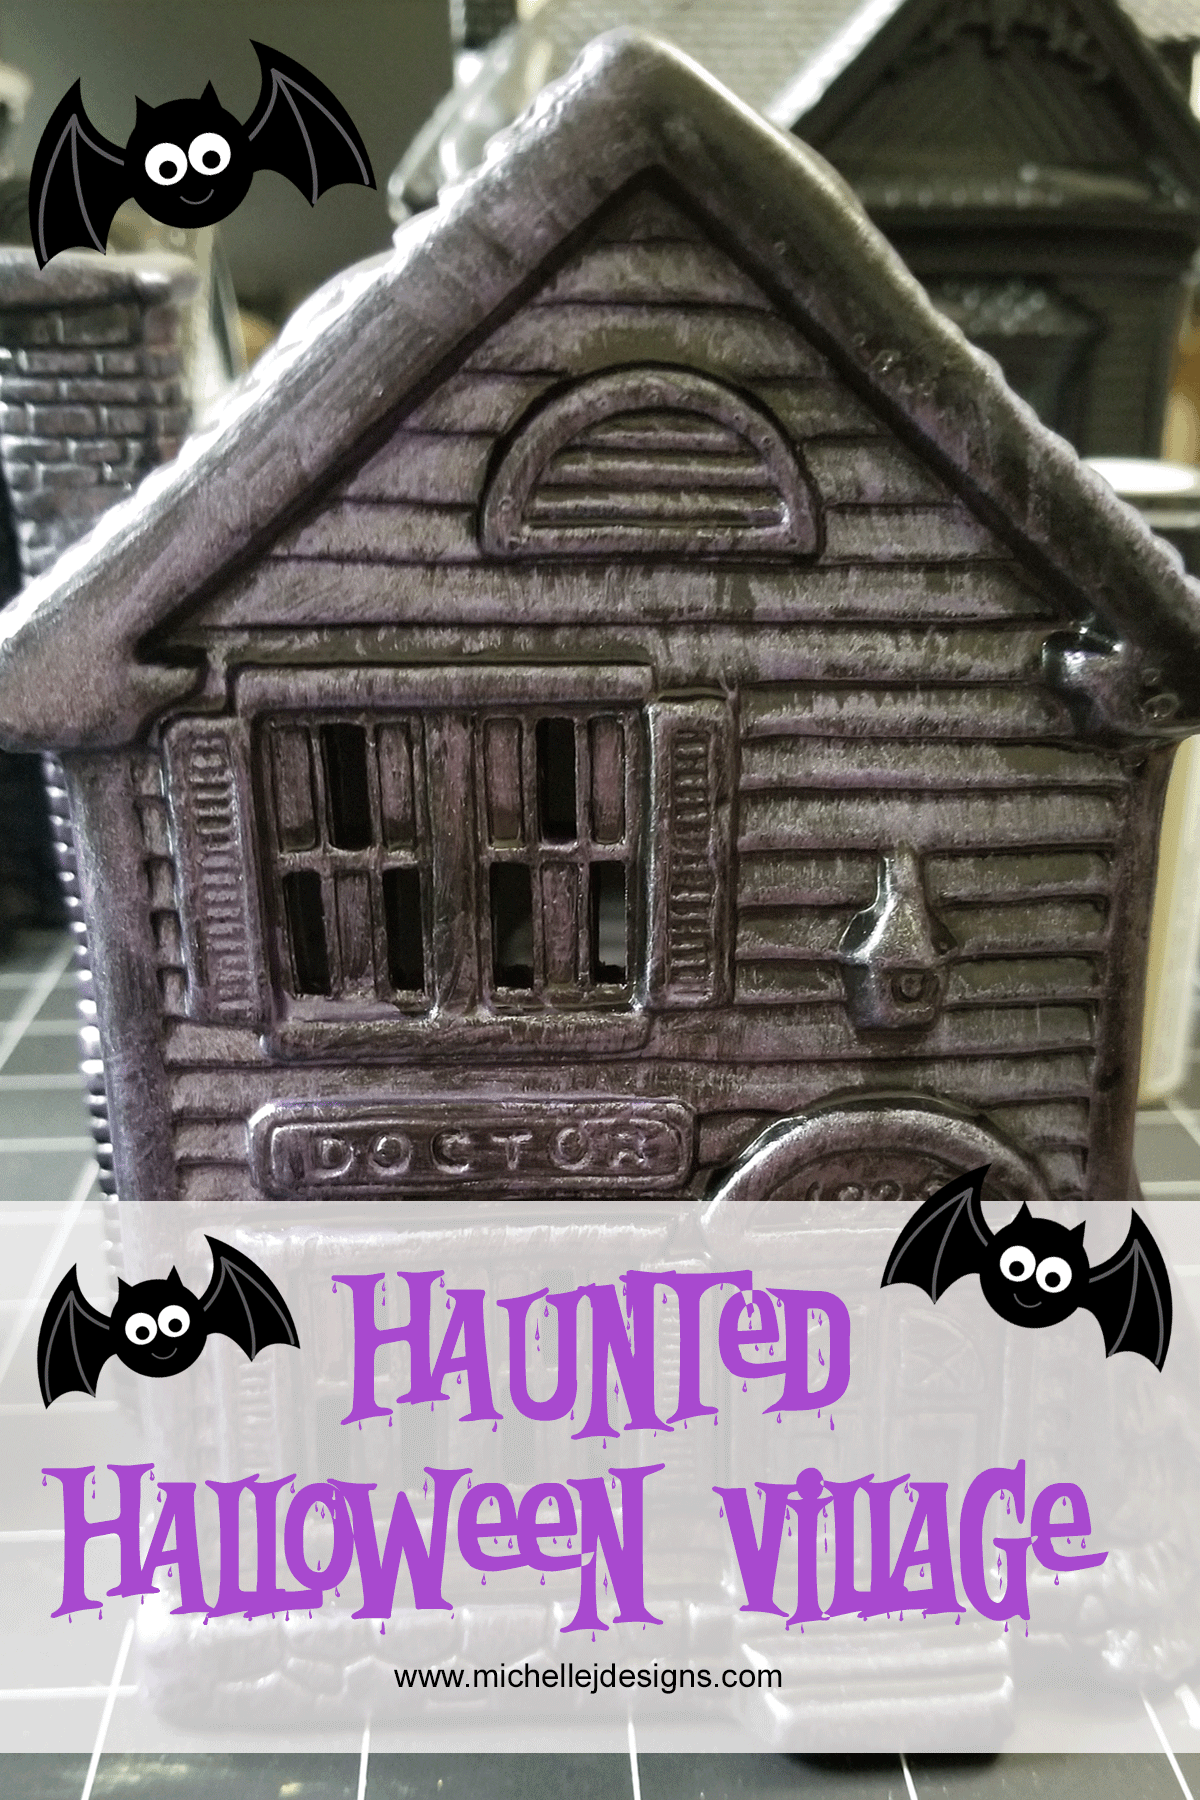 Haunted house from the haunted Halloween Village set